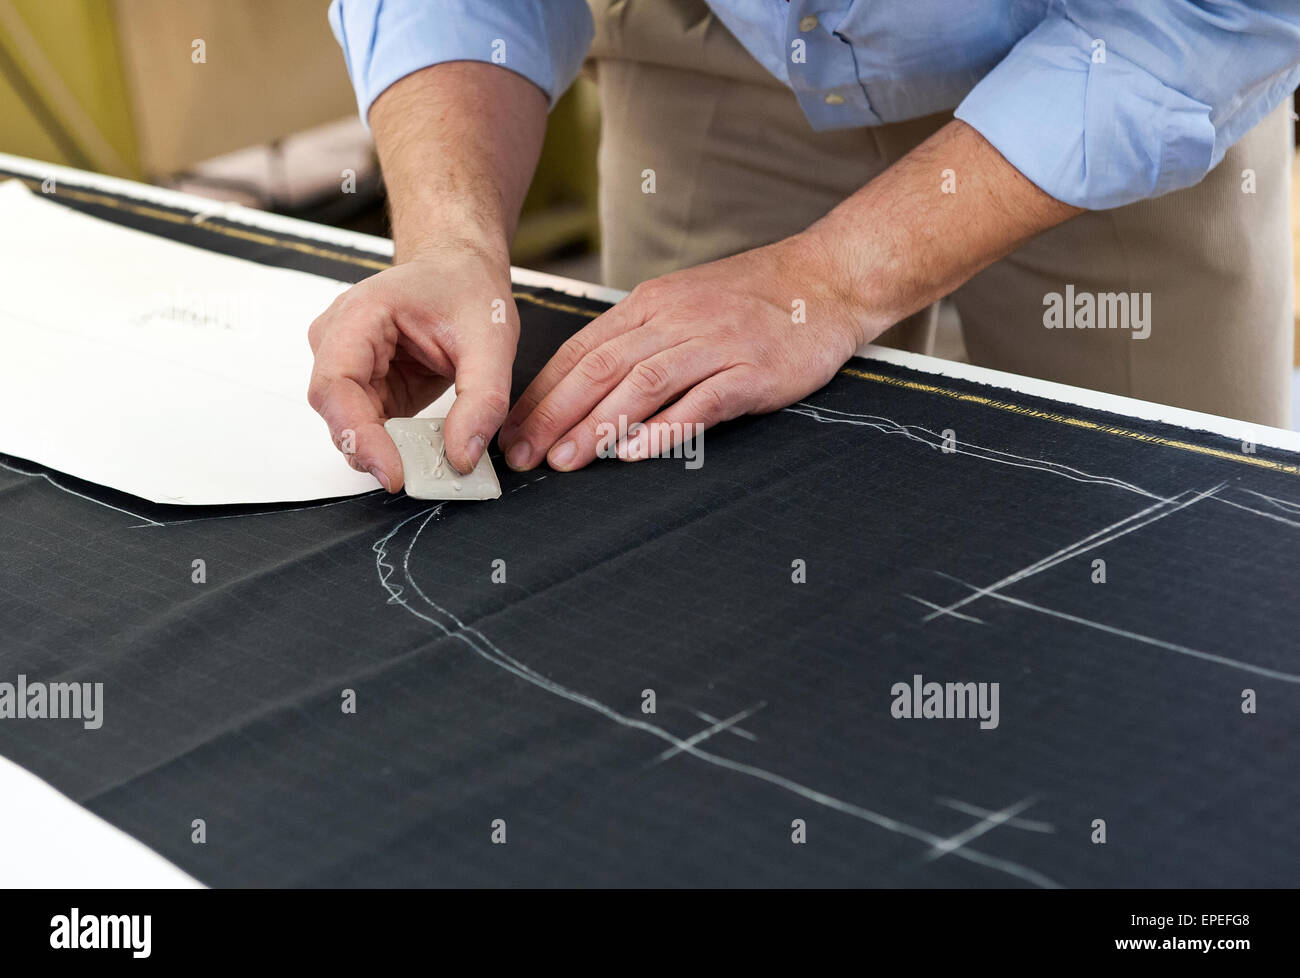 Tailor or designer using chalk to mark a pattern on to a length of fabric - Stock Image